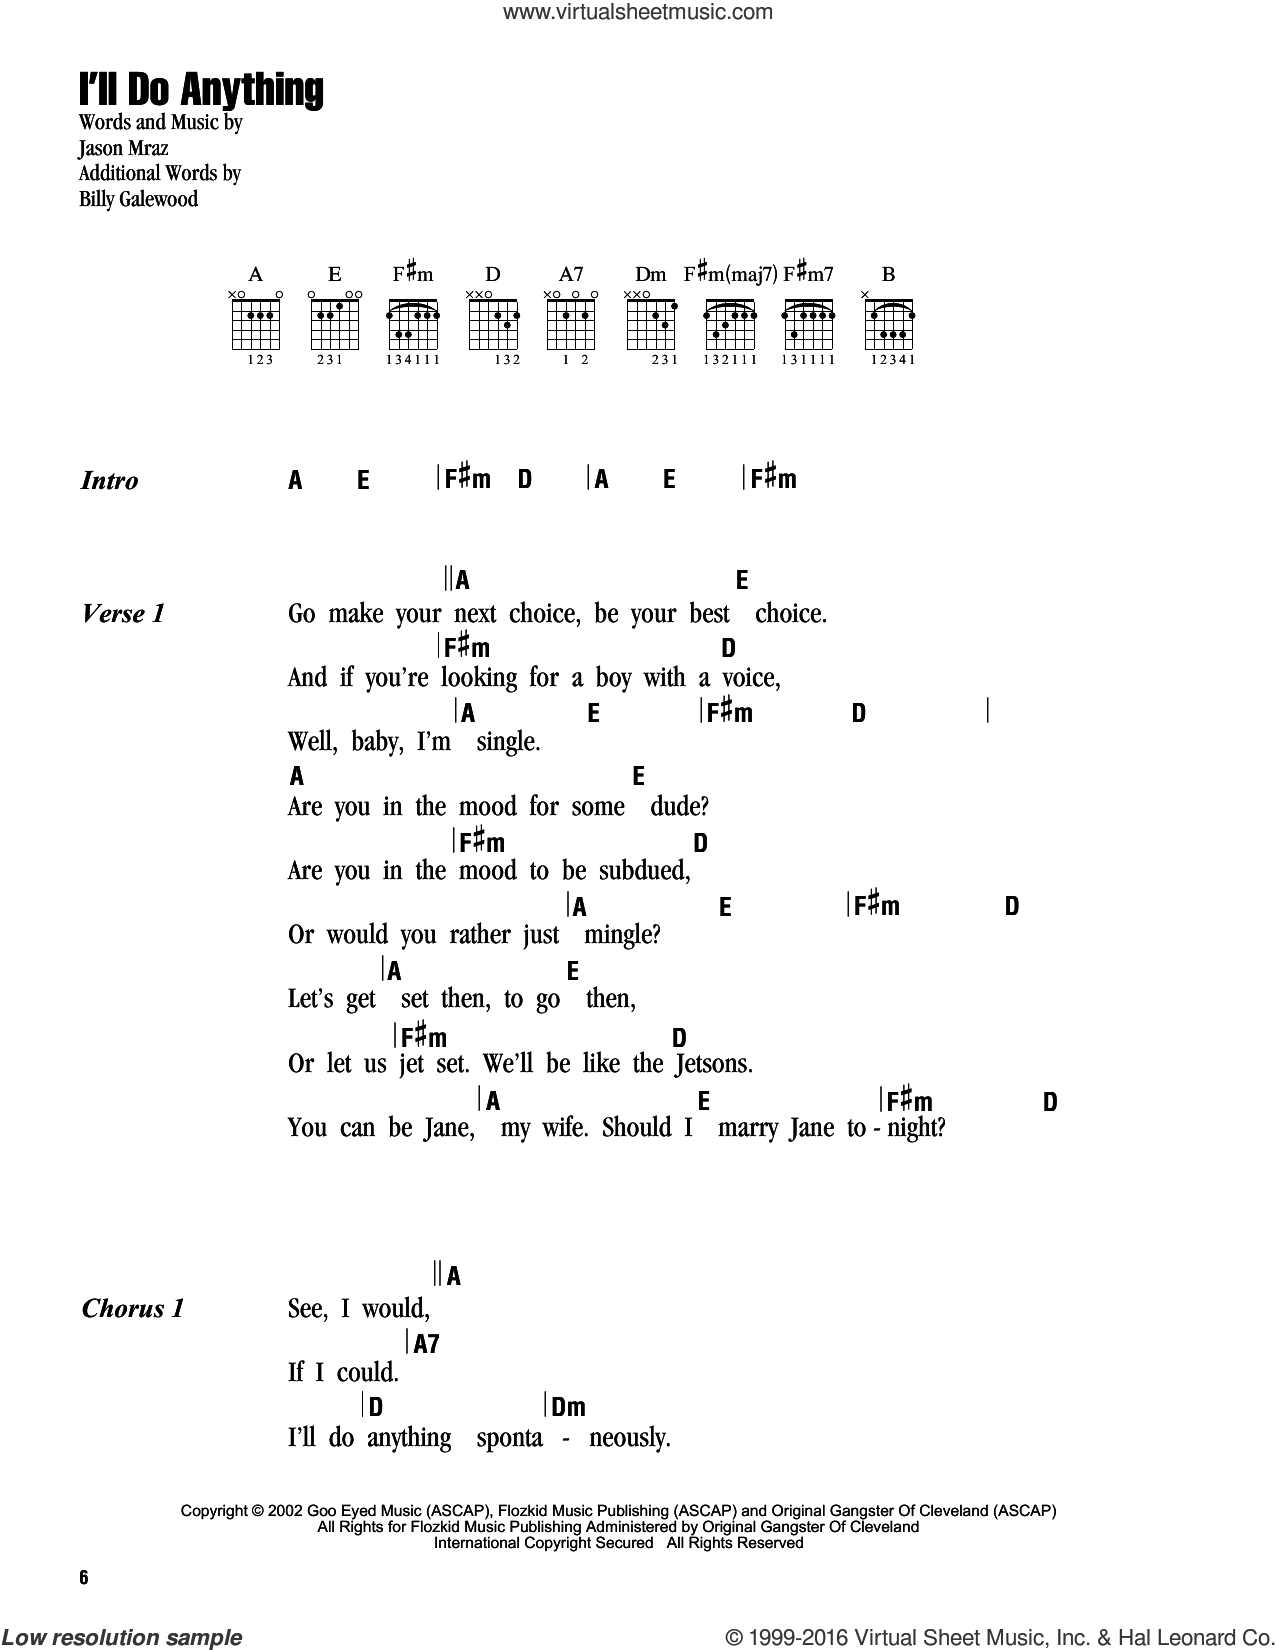 I'll Do Anything sheet music for guitar (chords) by Jason Mraz. Score Image Preview.